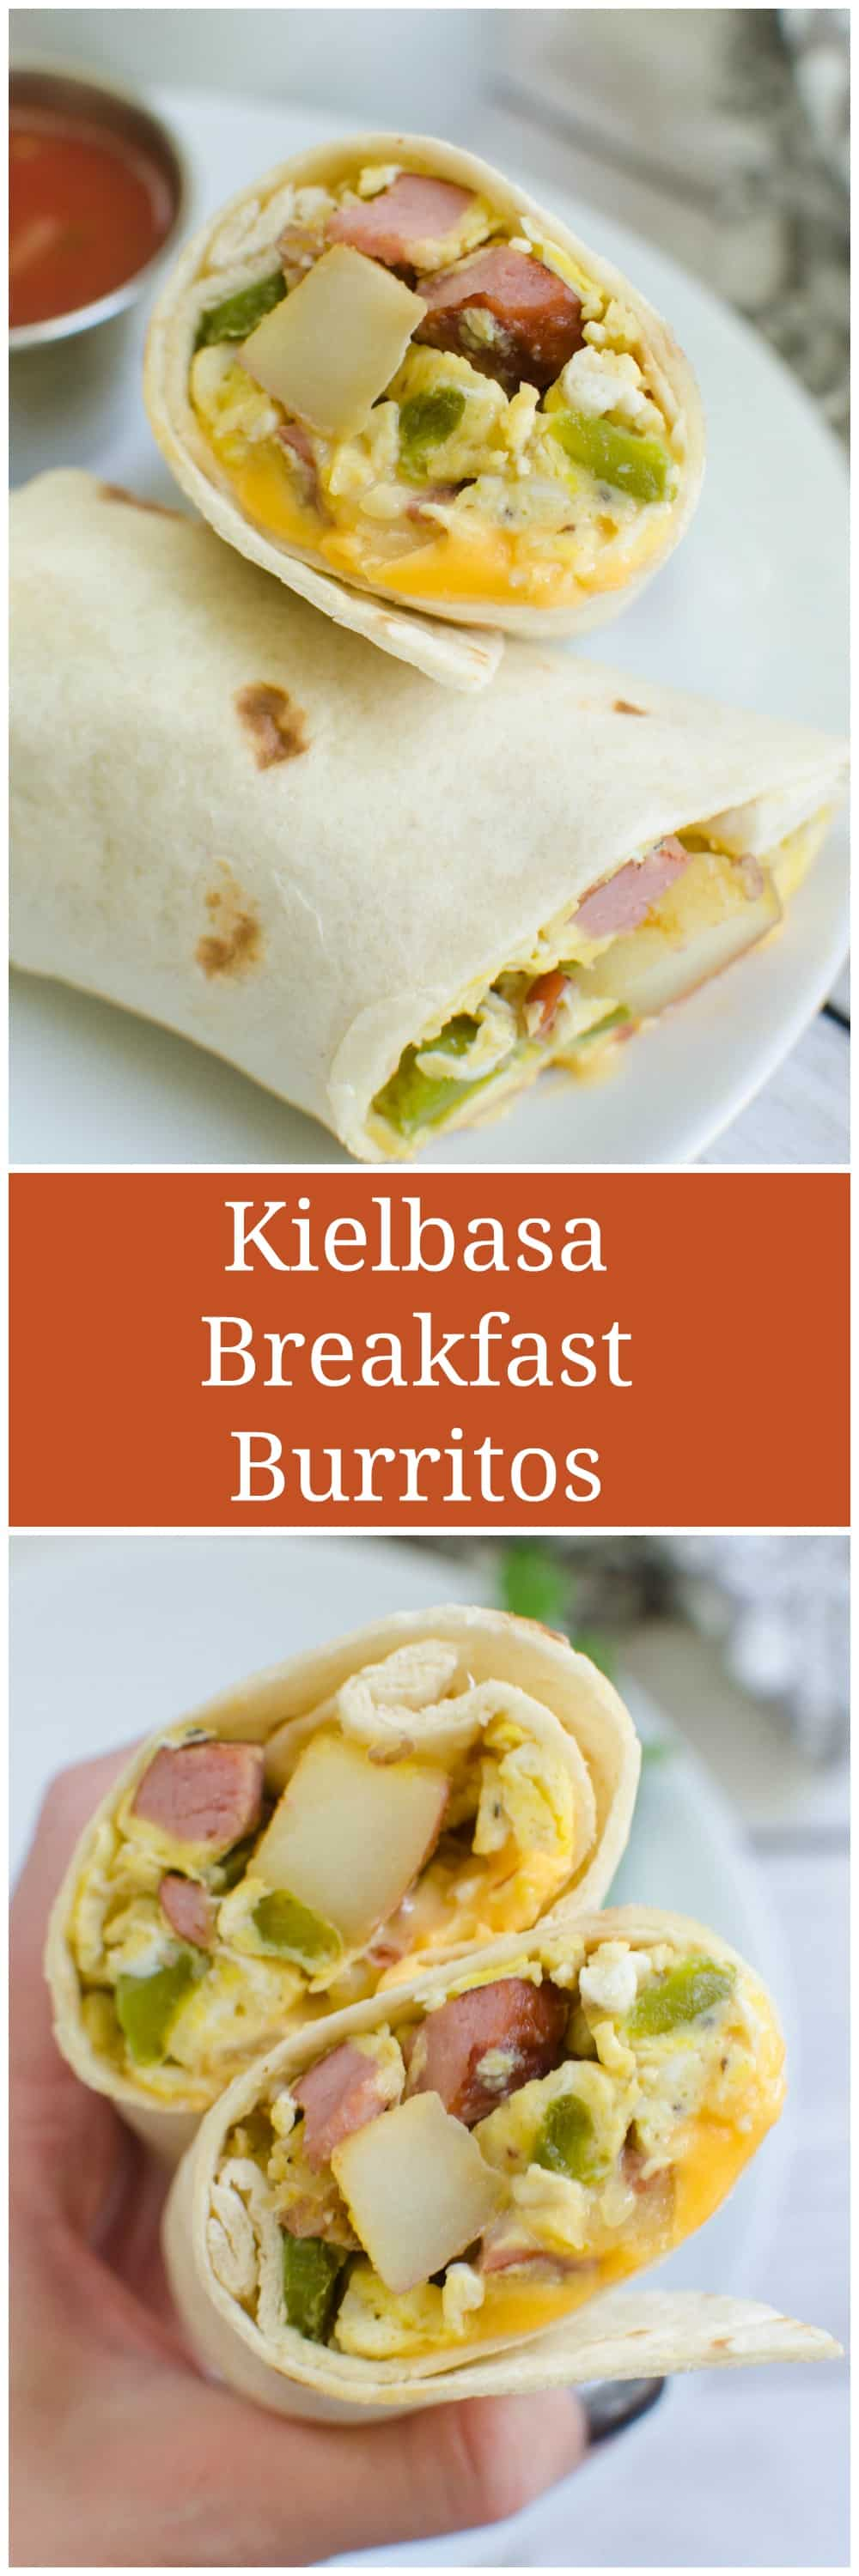 Kielbasa and Potato Breakfast Burritos - easy make ahead breakfast idea! Kielbasa, potatoes, and peppers rolled into tortillas with cheese and eggs.